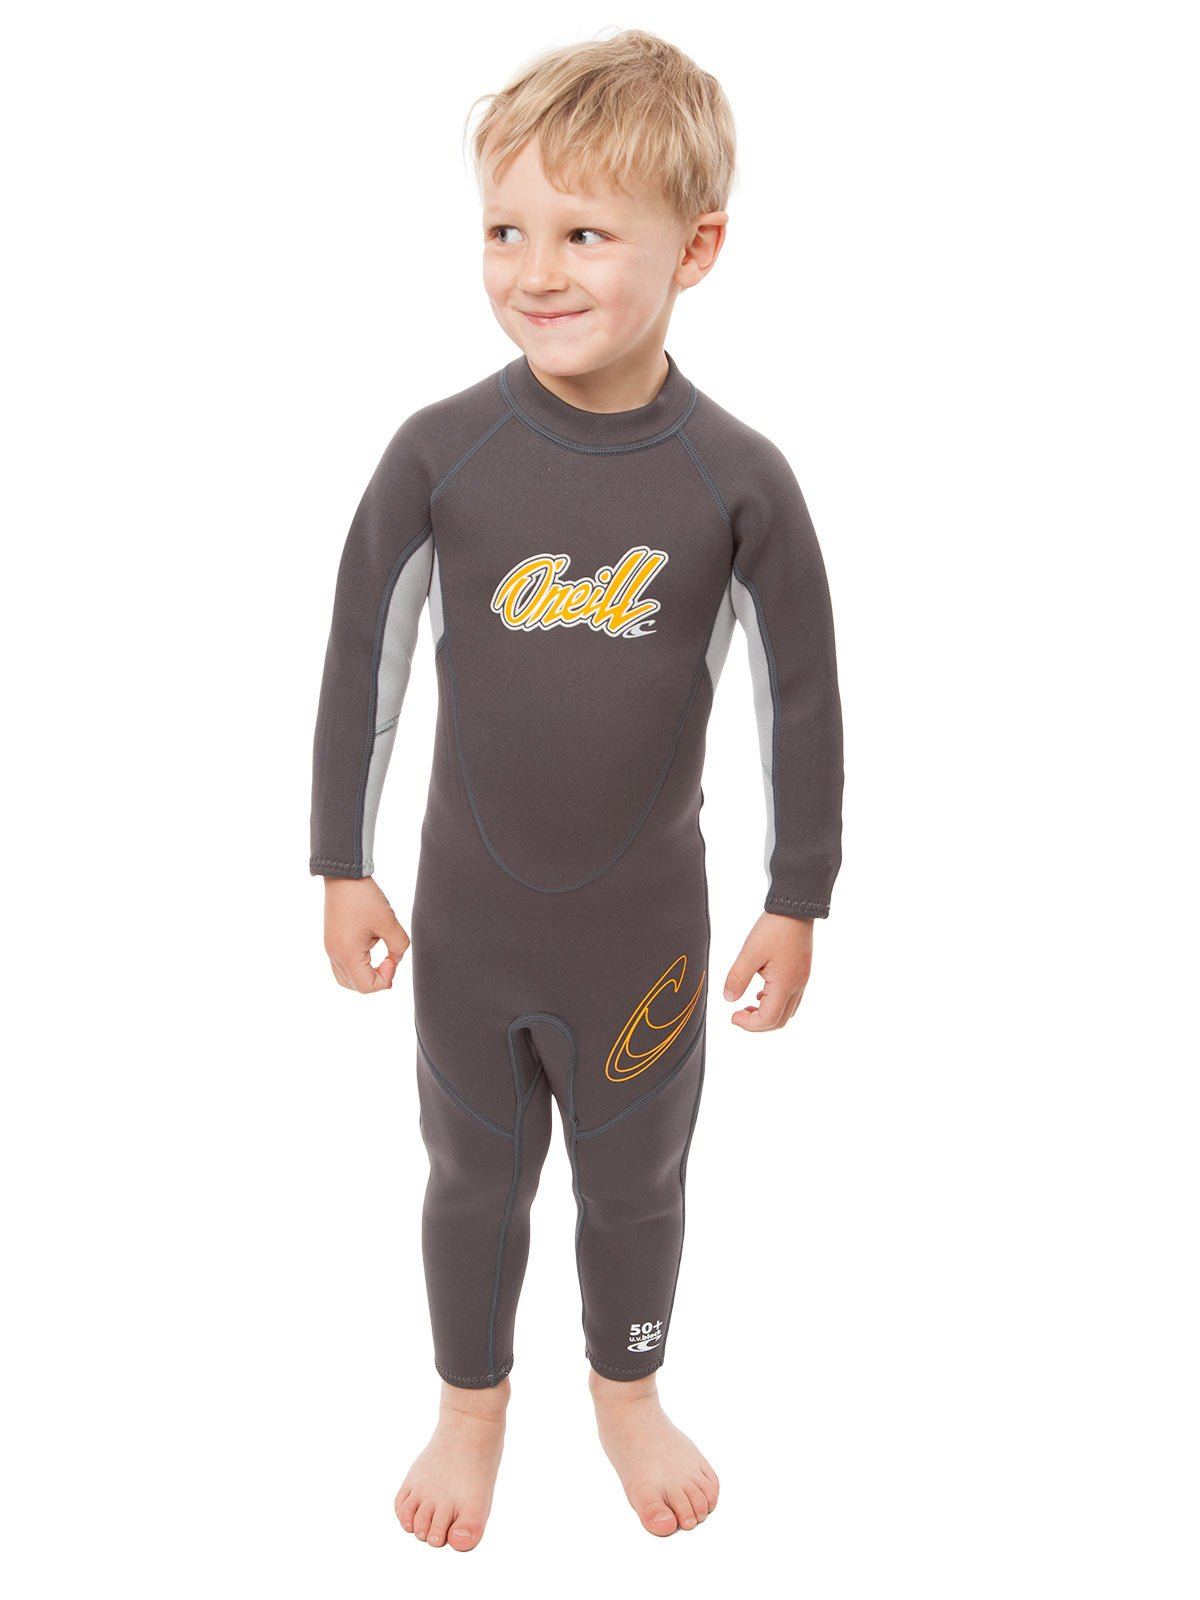 O'Neill Reactor Toddler Full Wetsuit Youth 1 Graphite/Cool Grey/Orange (4629B) by O'Neill Wetsuits